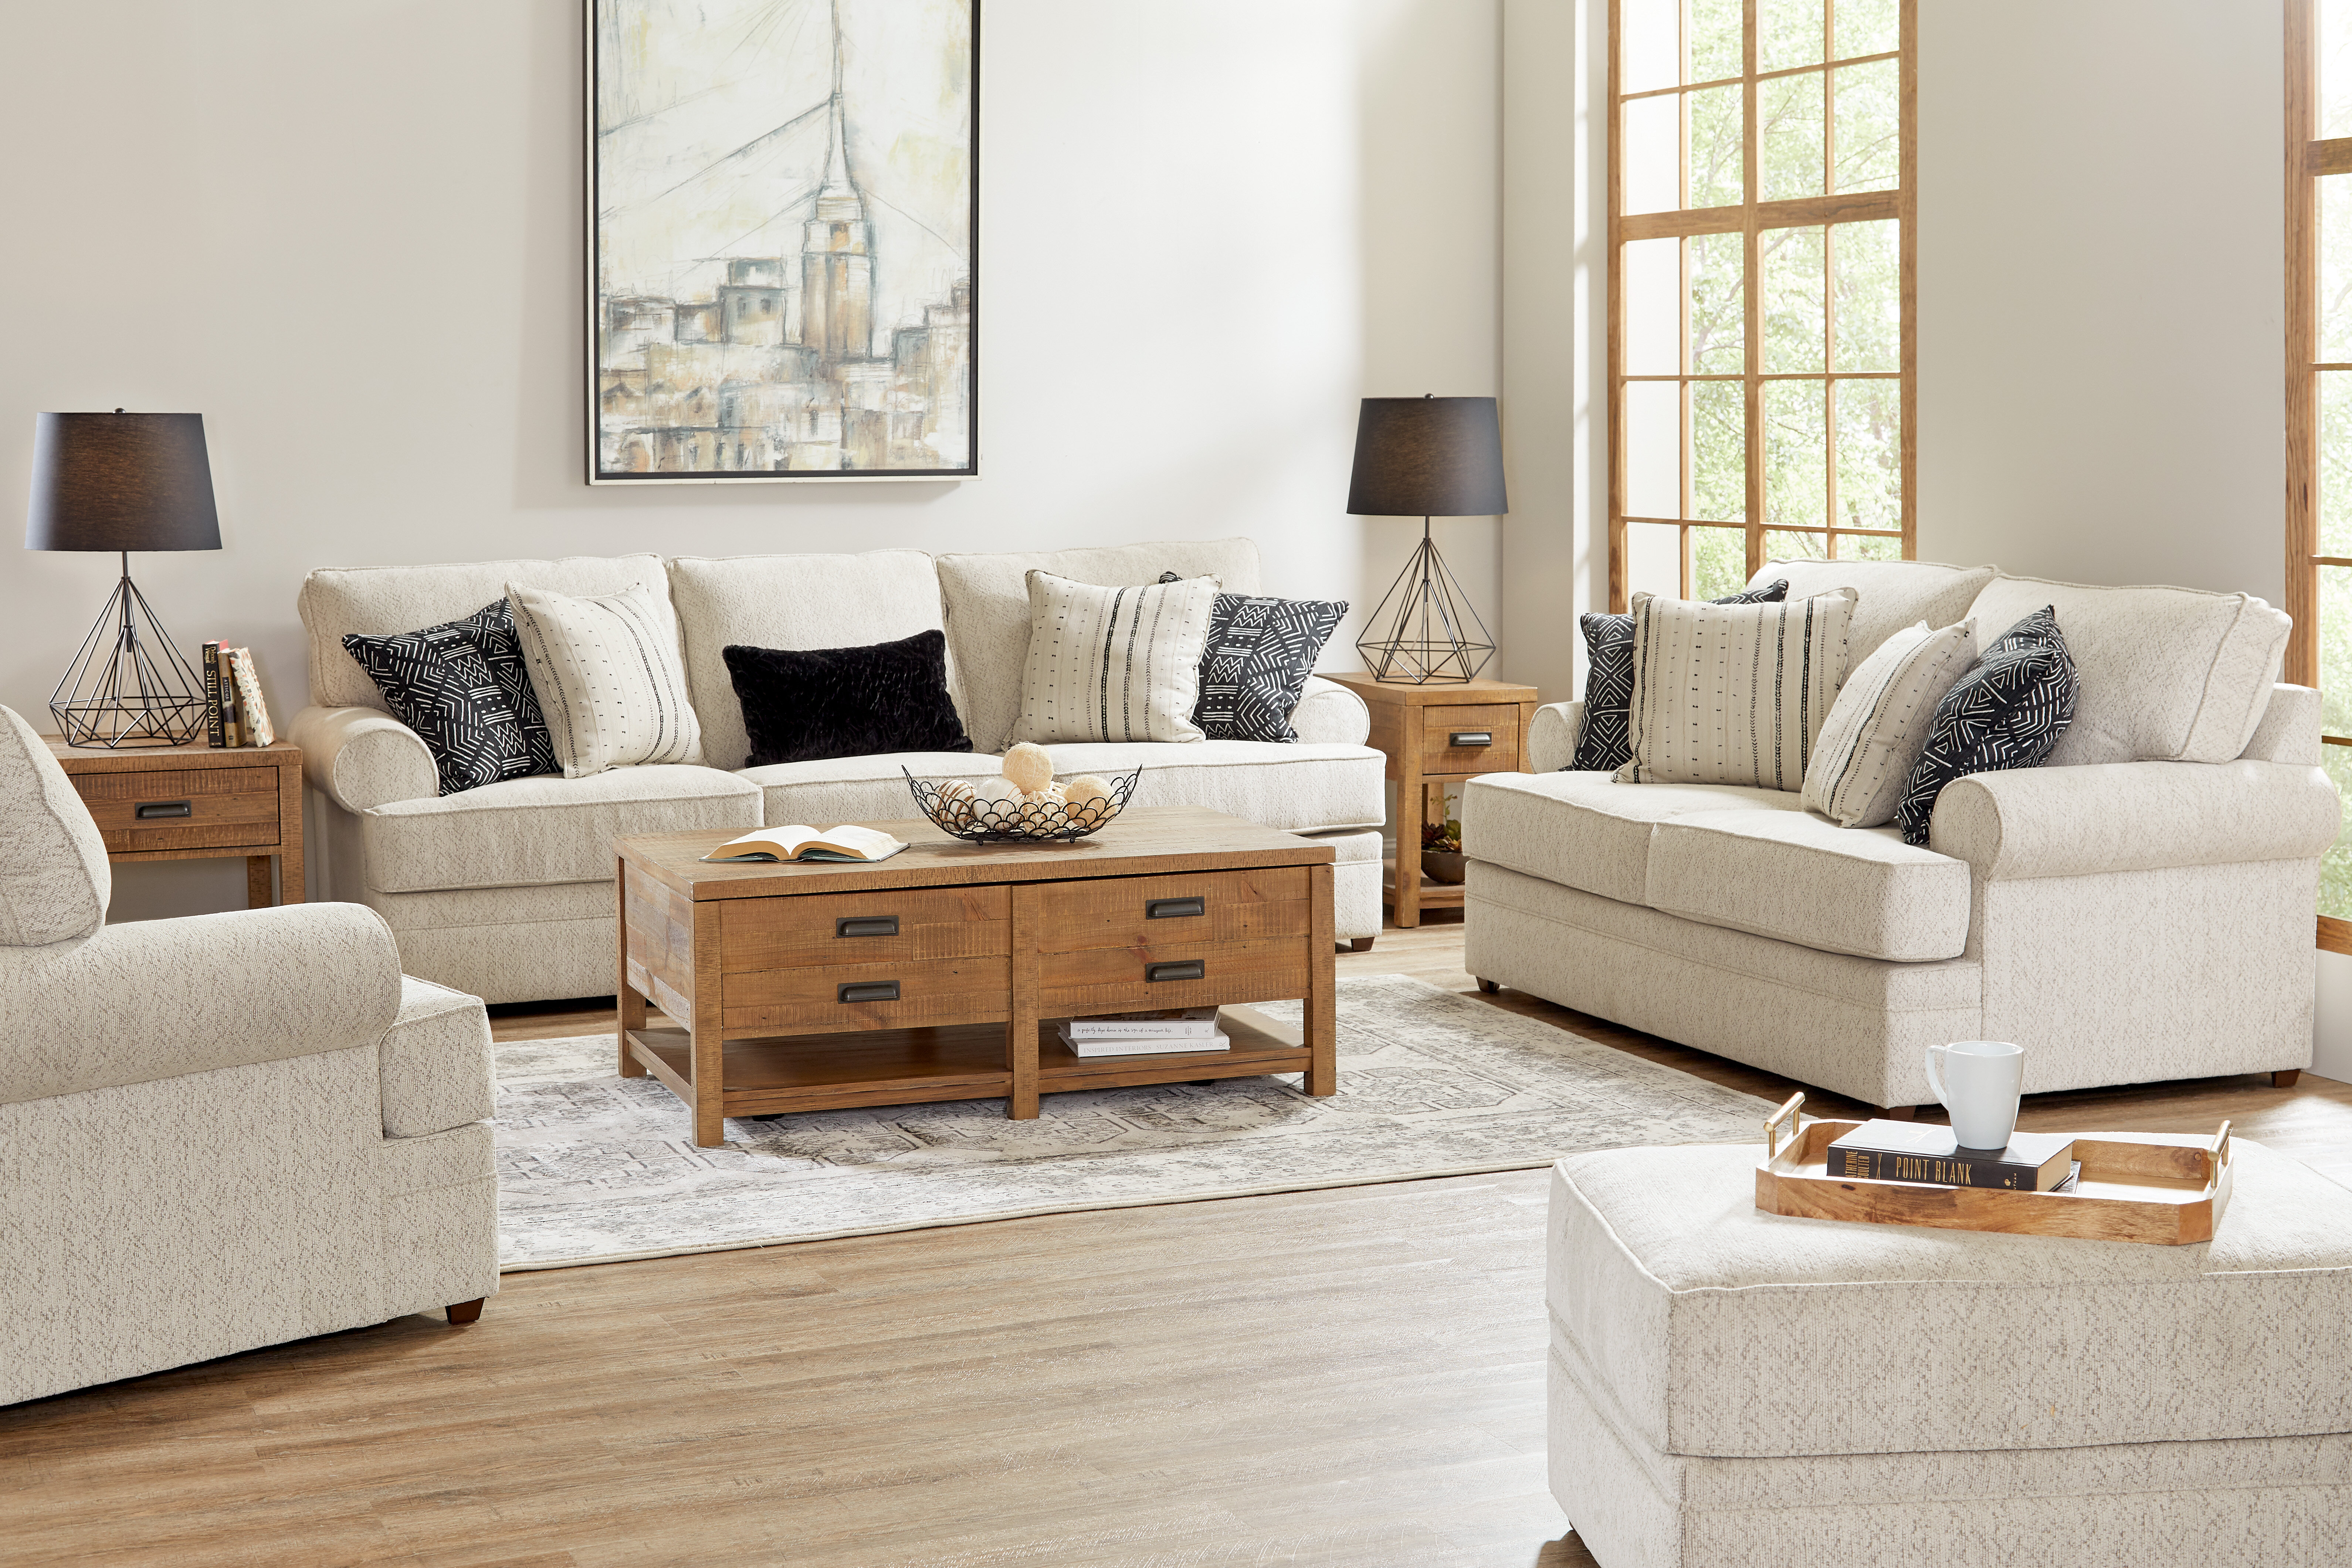 Update Your Space with These 29 Family Room Decorating Ideas  Wayfair